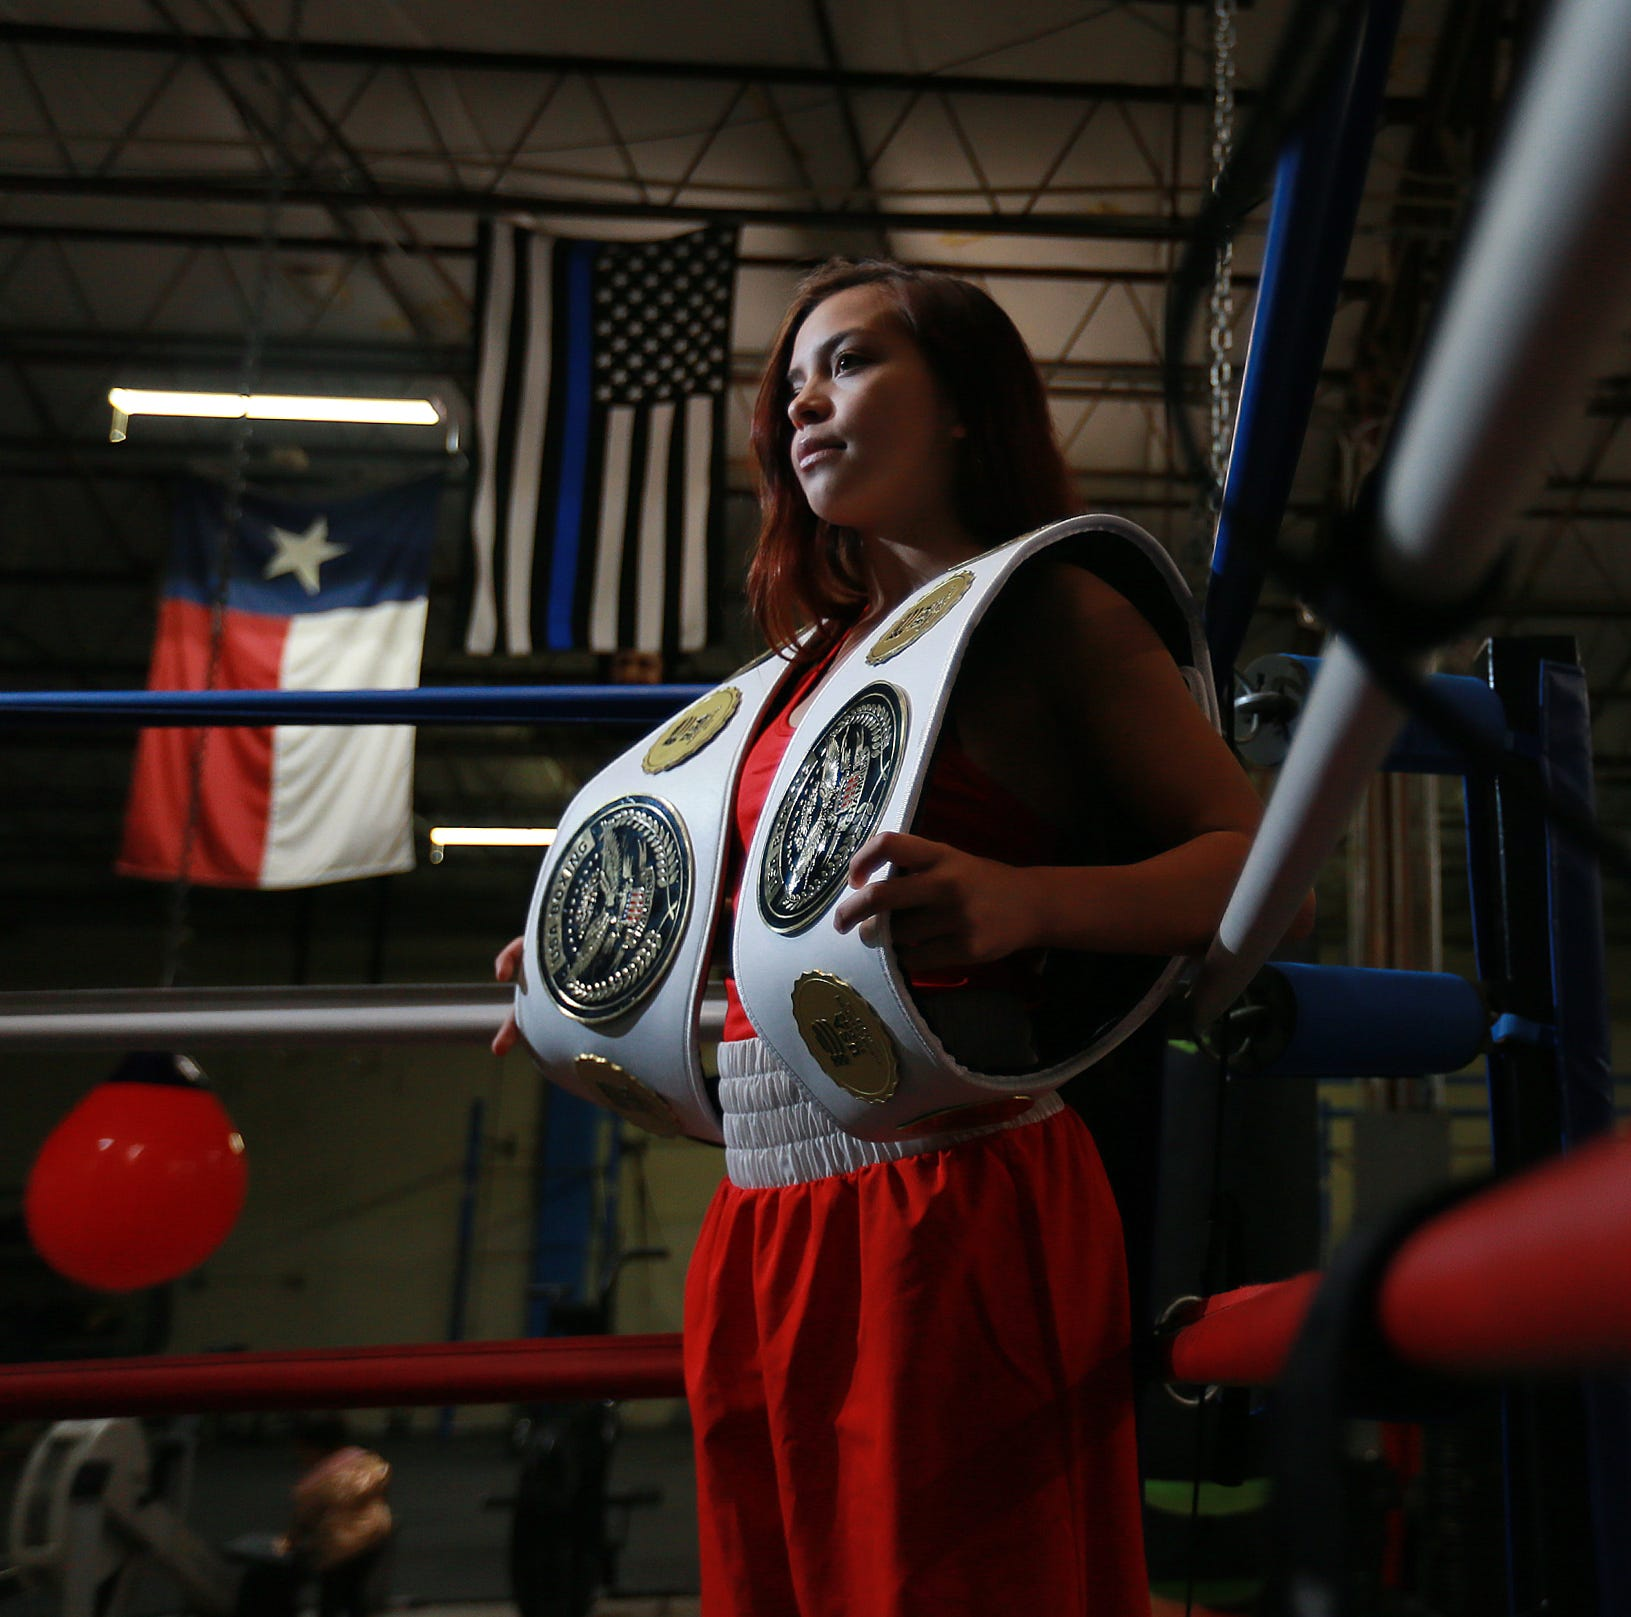 15-year-old Kayla Gomez of El Paso wins boxing championship, stays on US national team